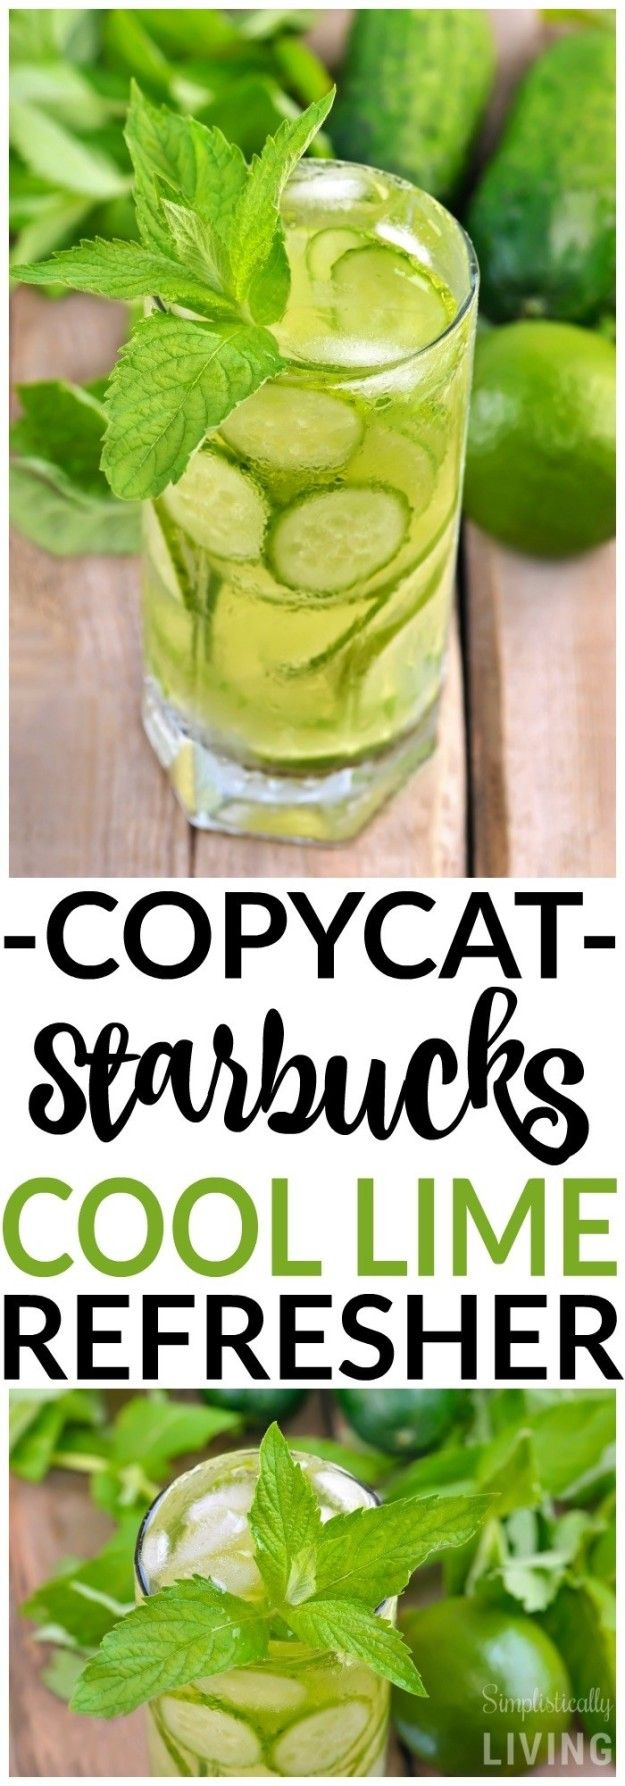 Cool Lime Refresher | 29 DIY Starbucks Recipes That Will Save You Tons Of Cash